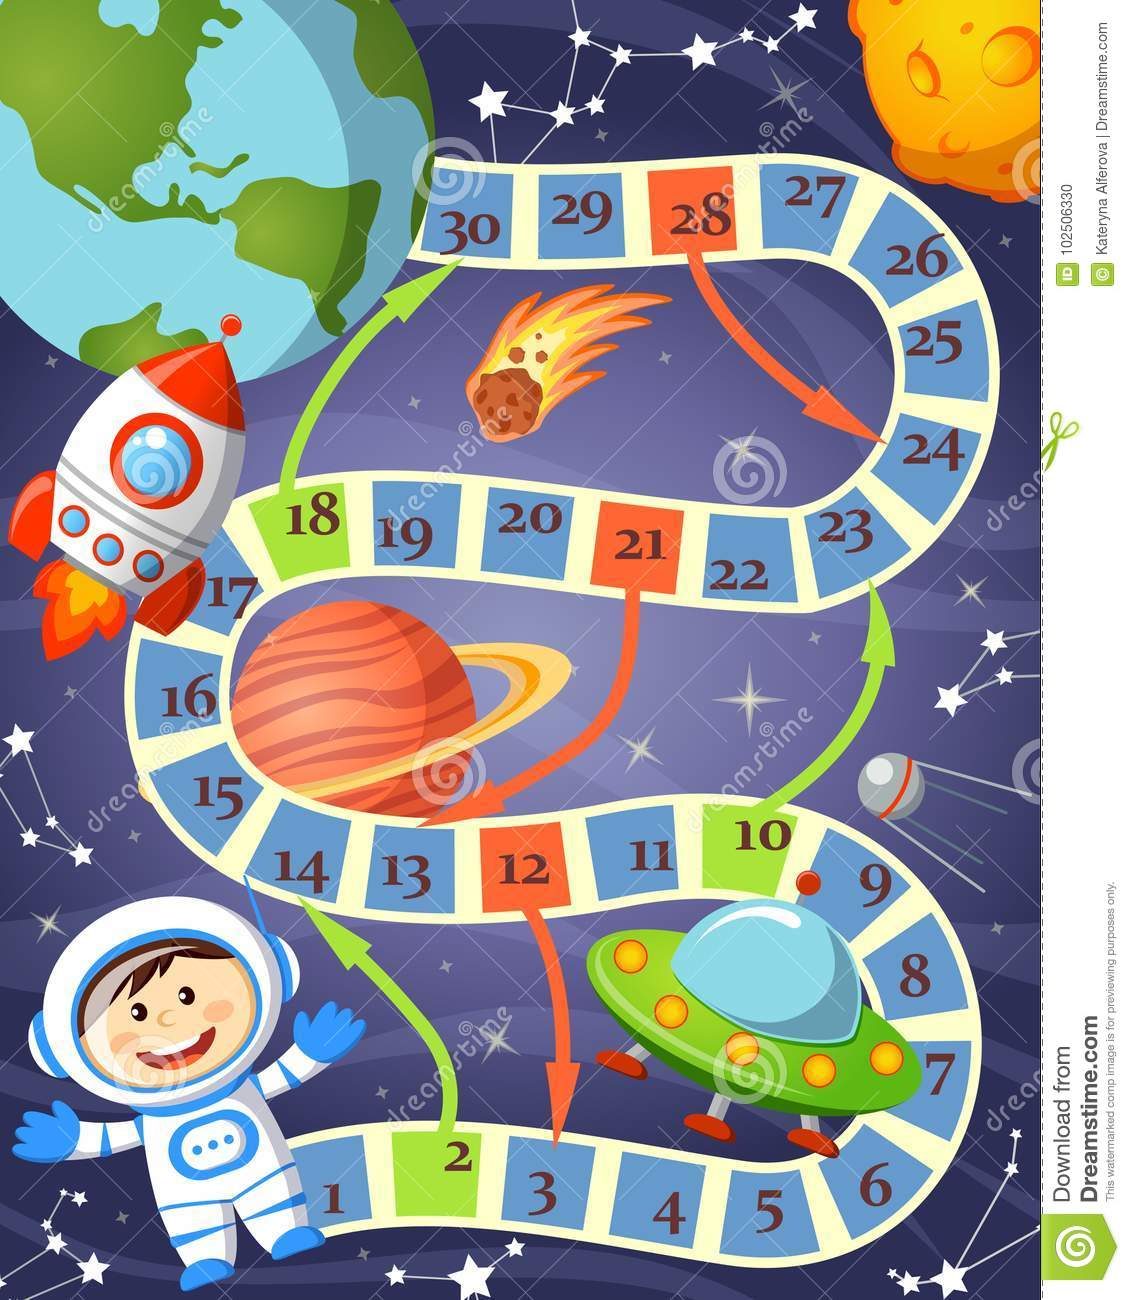 Board Game With Cosmonaut Ufo Rocket Planet And Stars